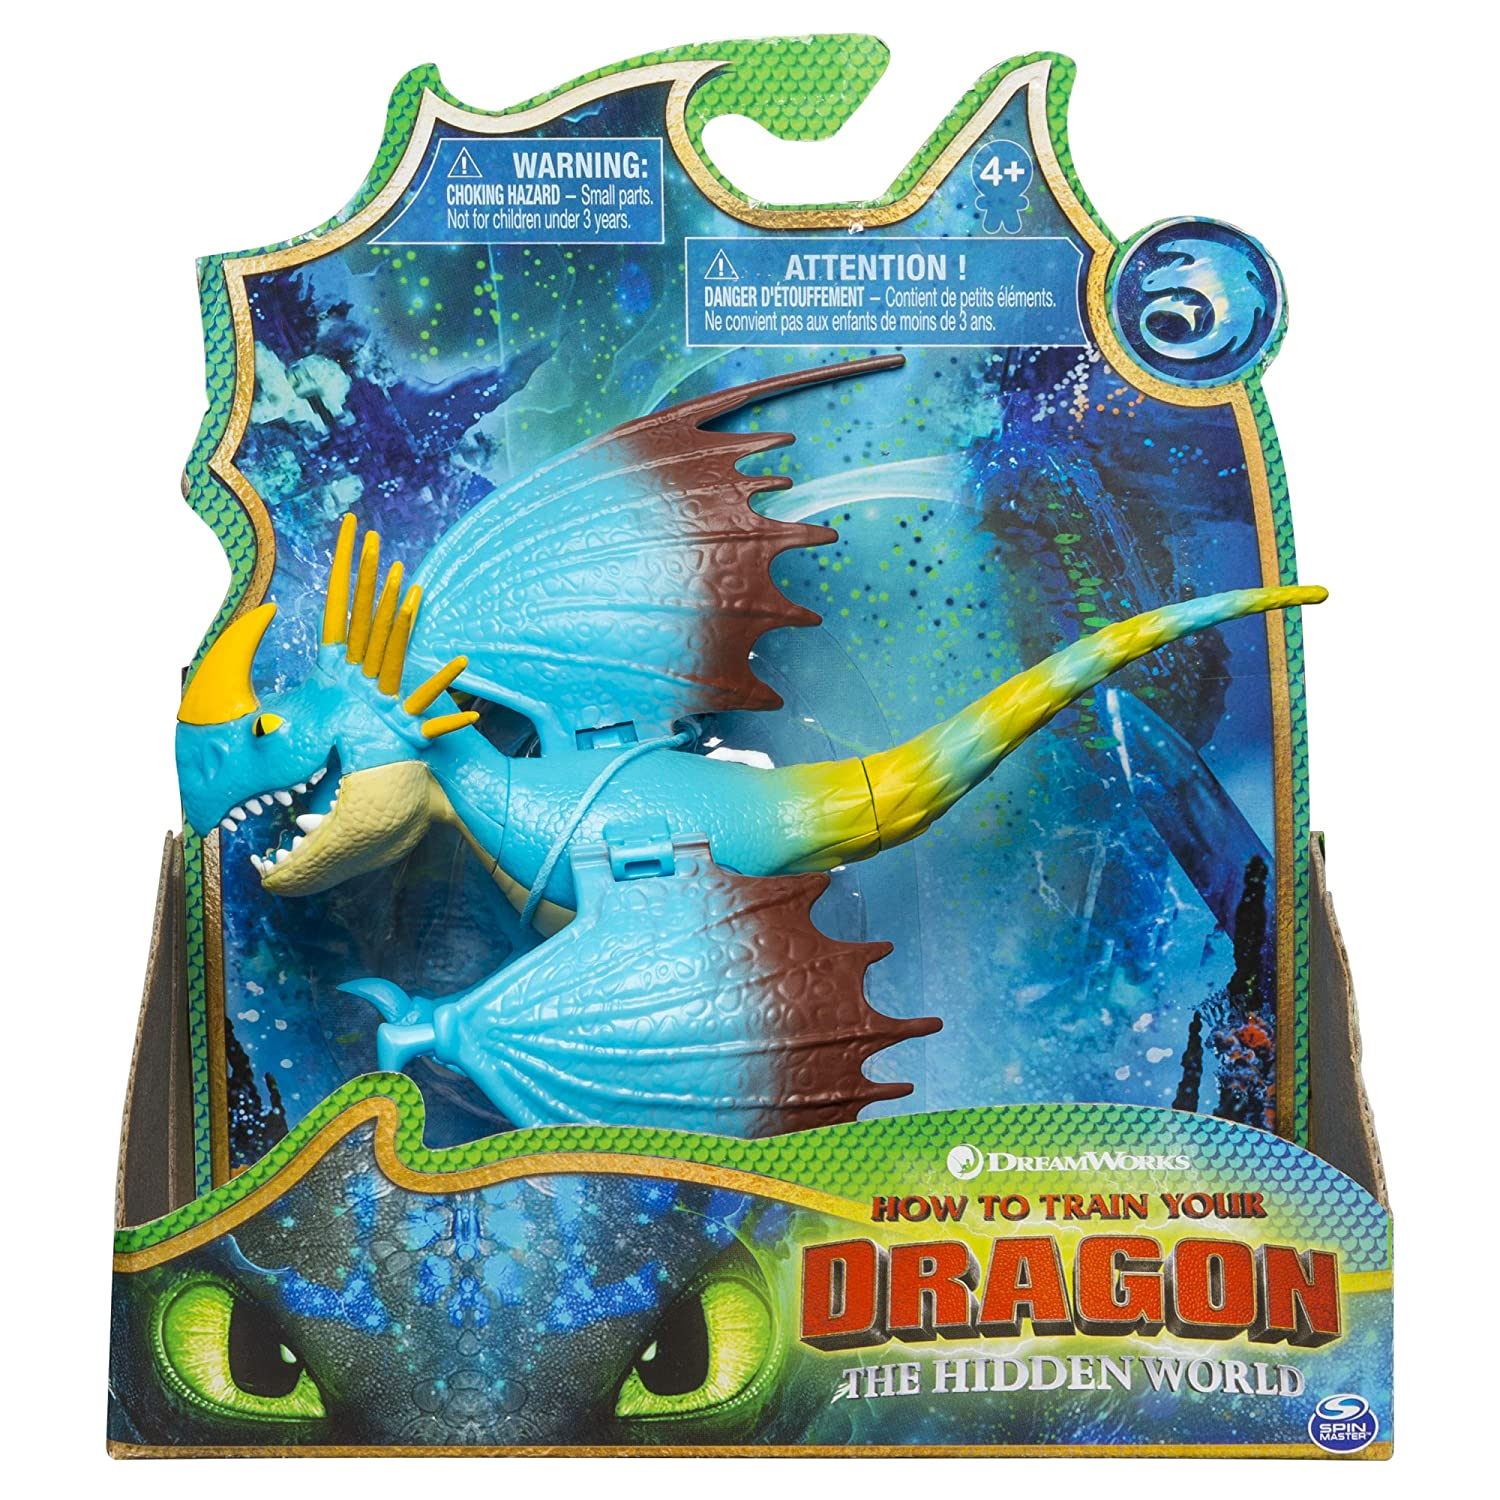 DreamWorks Dragons, Stormfly Dragon Figure with Moving Parts, for Kids Aged 4 and Up